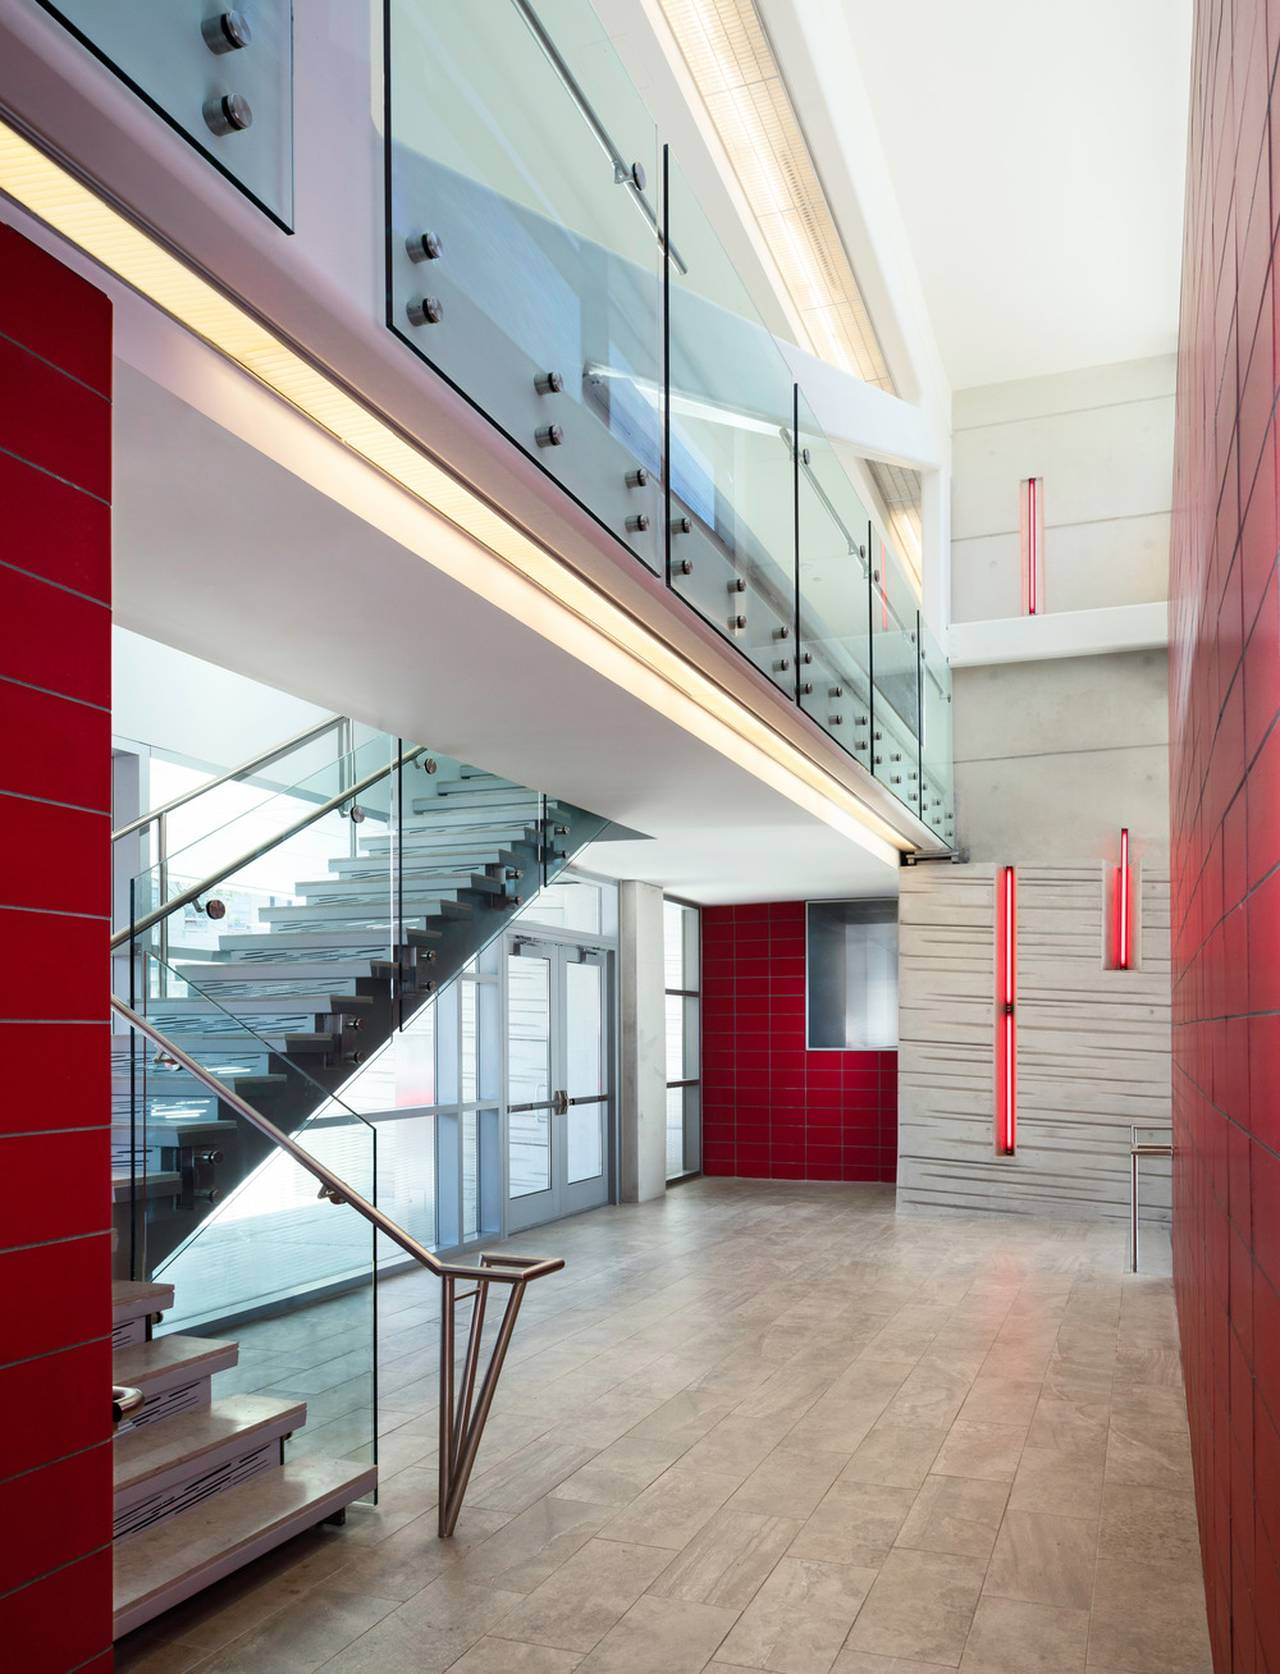 FDNY identity is reinforced throughout the circulation with red tile and fluorescent linear lighting that emulate passing ambulances : Photo credit © Paul Warchol